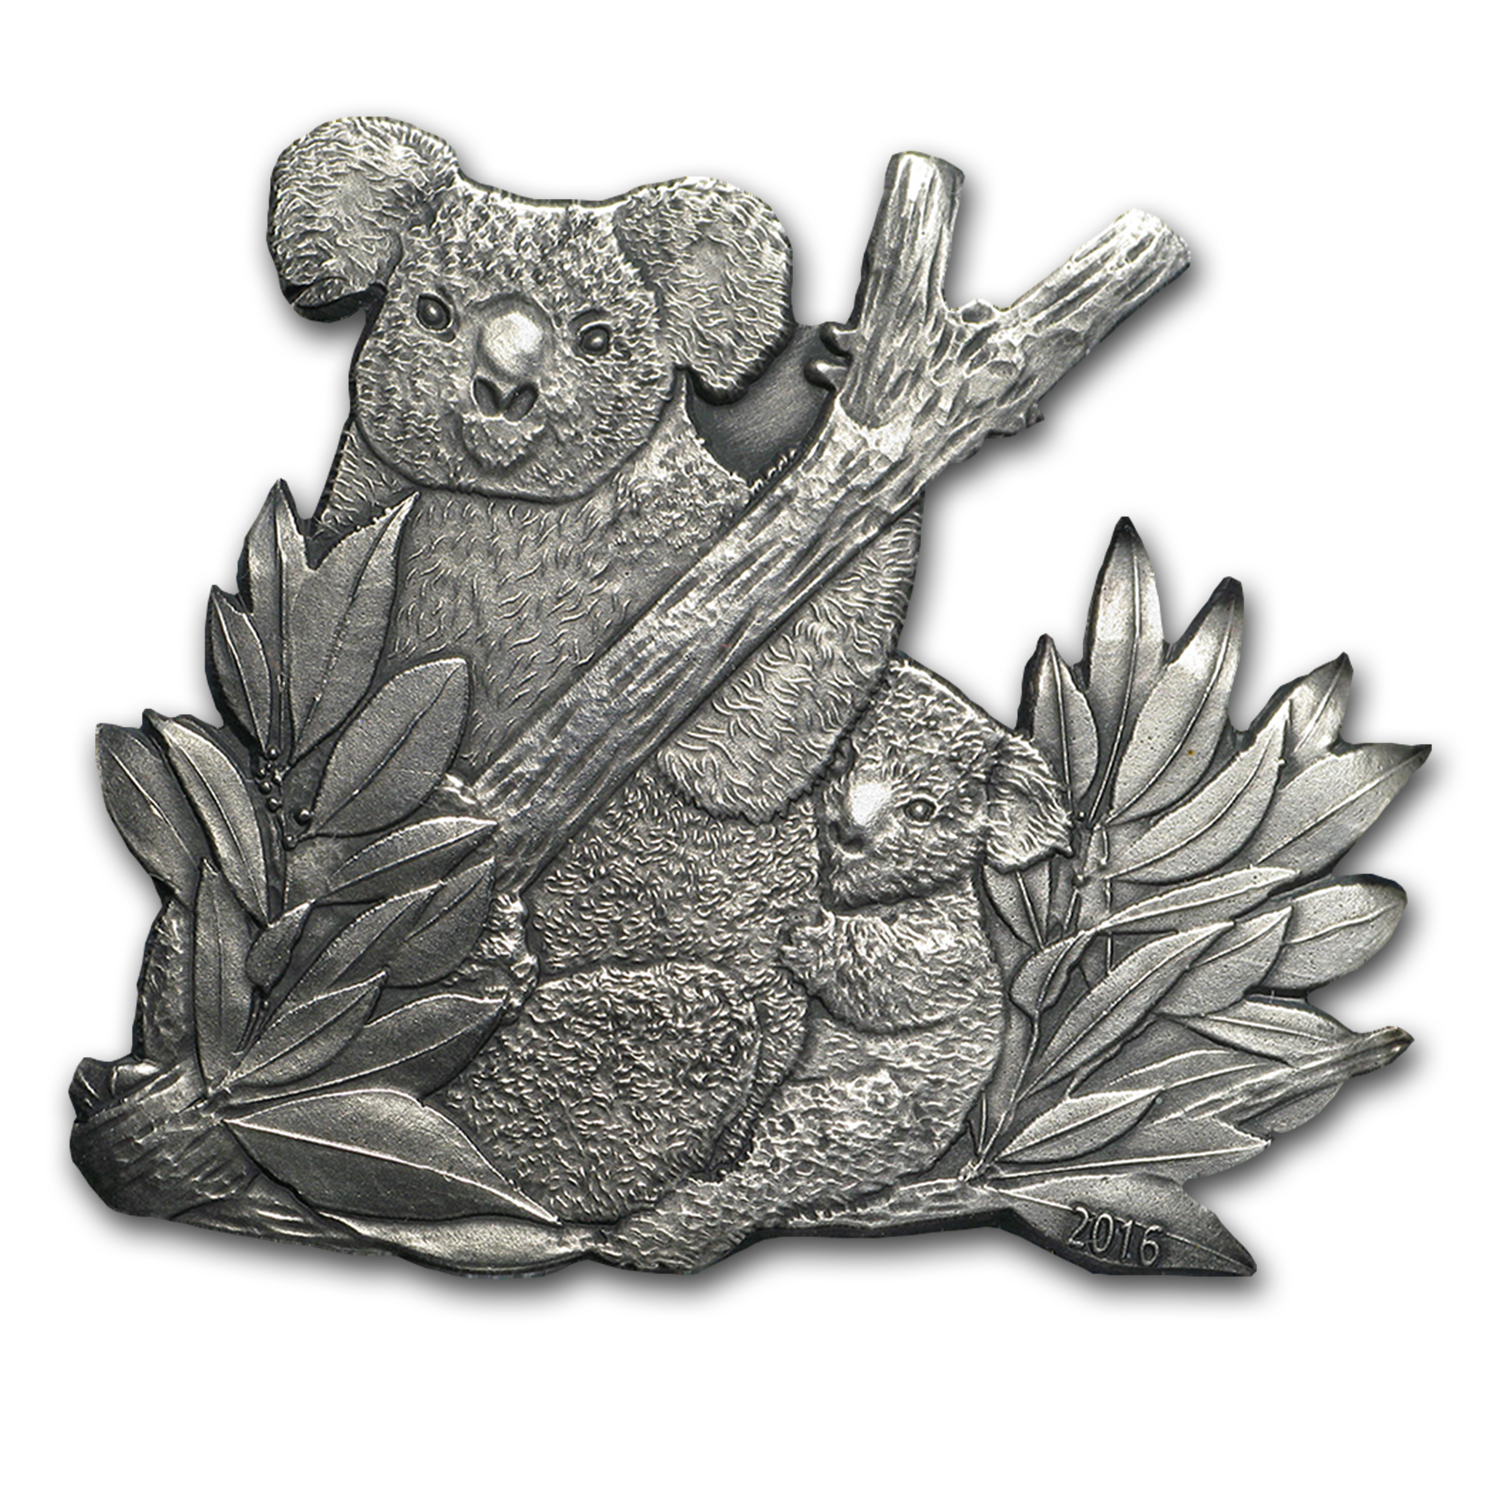 2016 Burkina Faso 1 oz Silver Koala Cut-Out